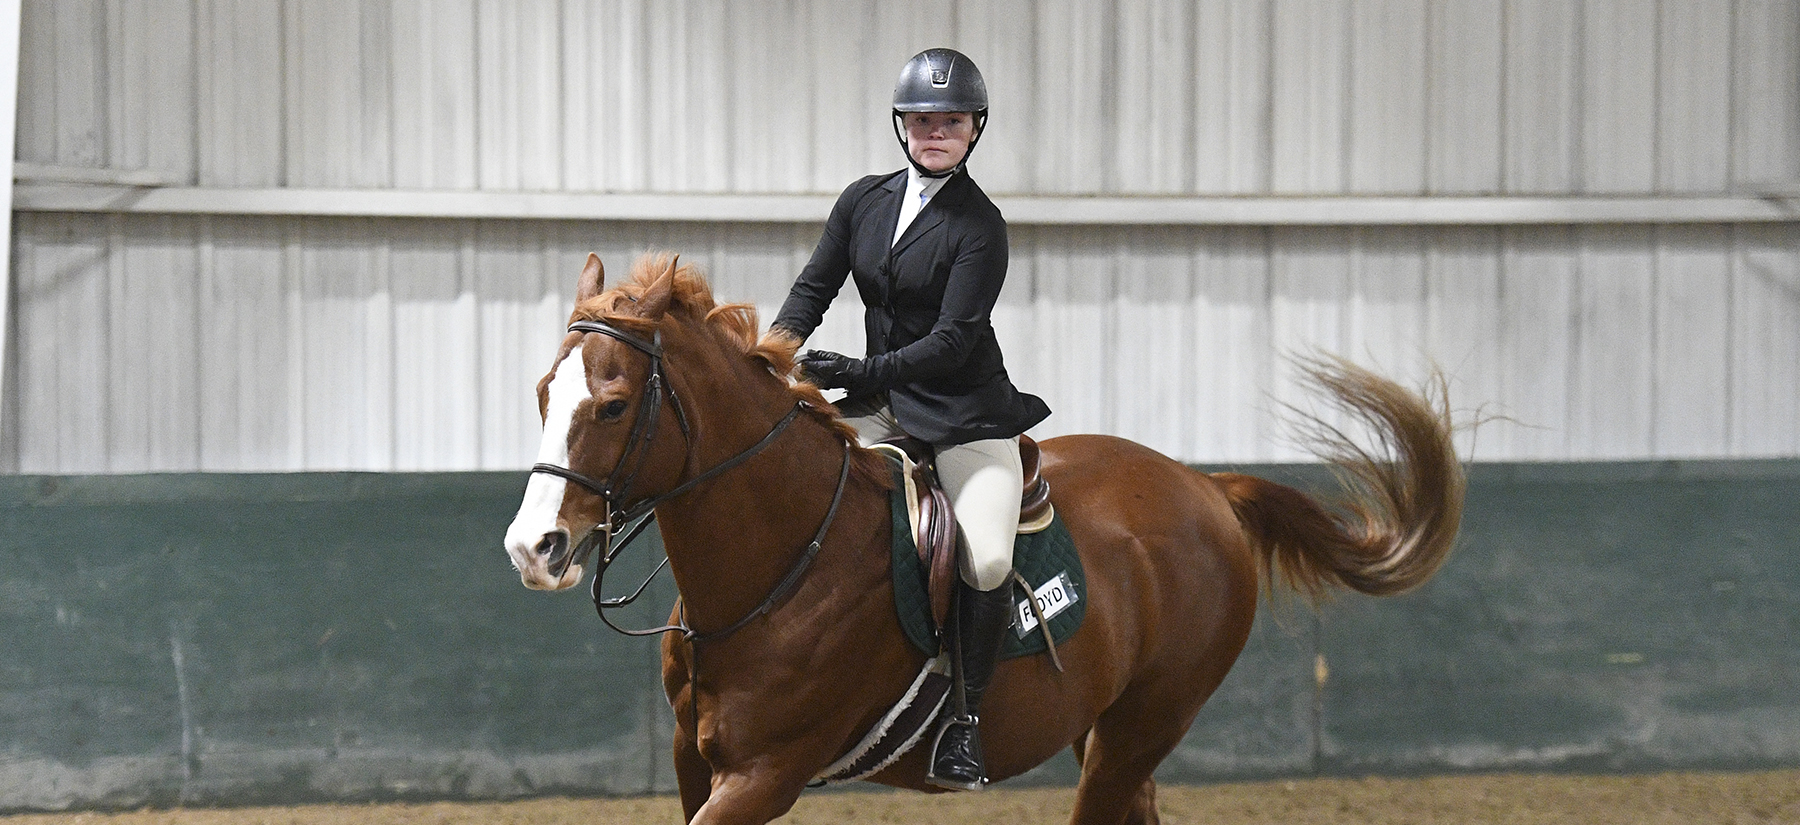 Equestrian Ties for High Point Team at Trinity